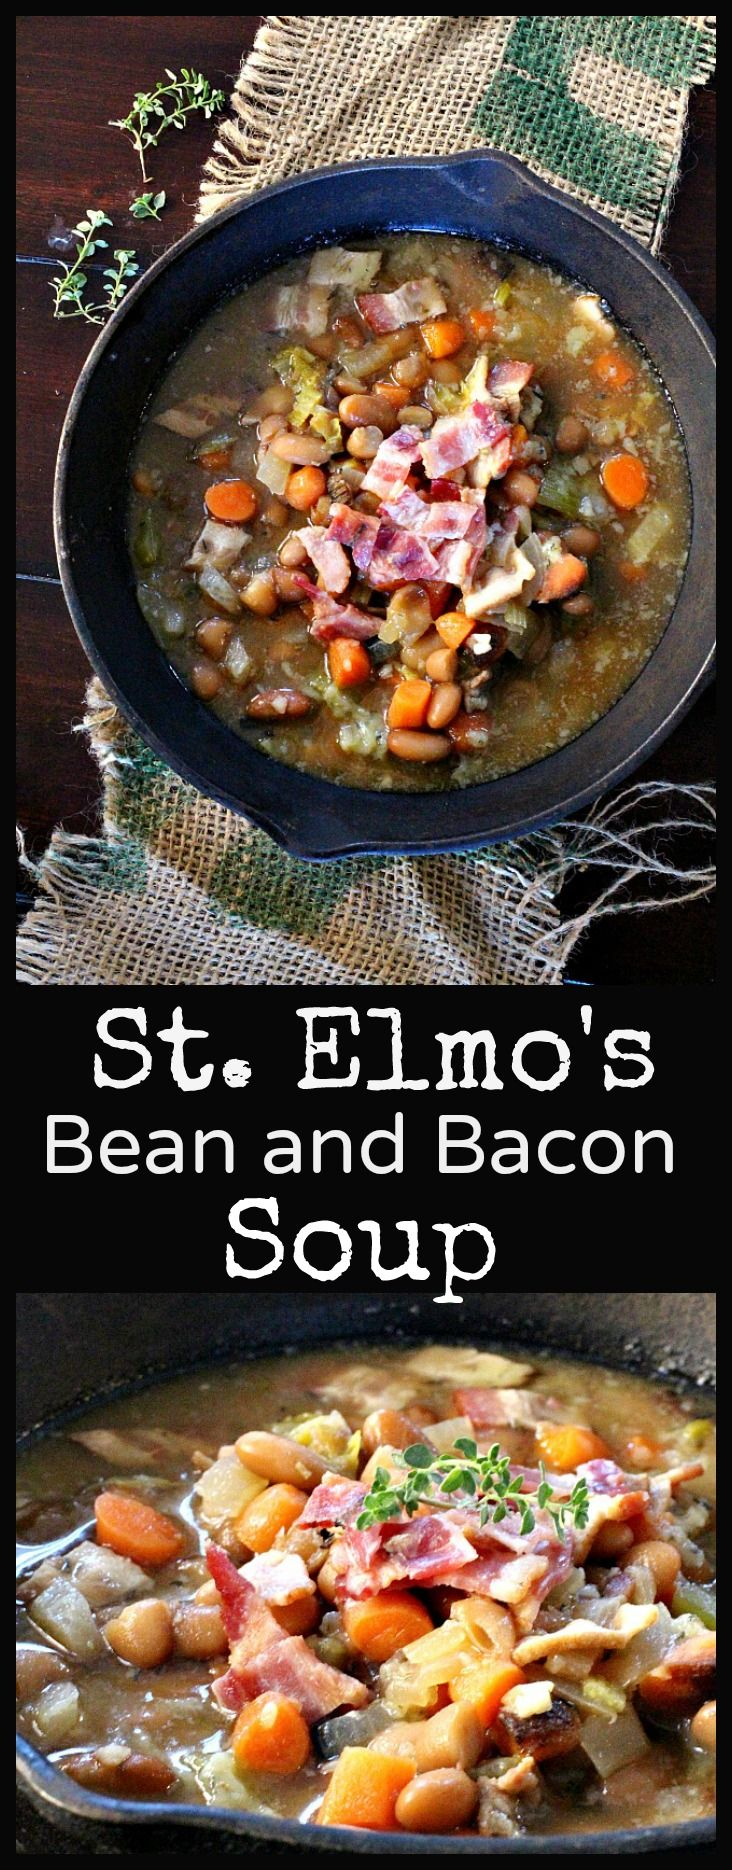 White bean soup. White beans are flavored with herbs, carrots and ...